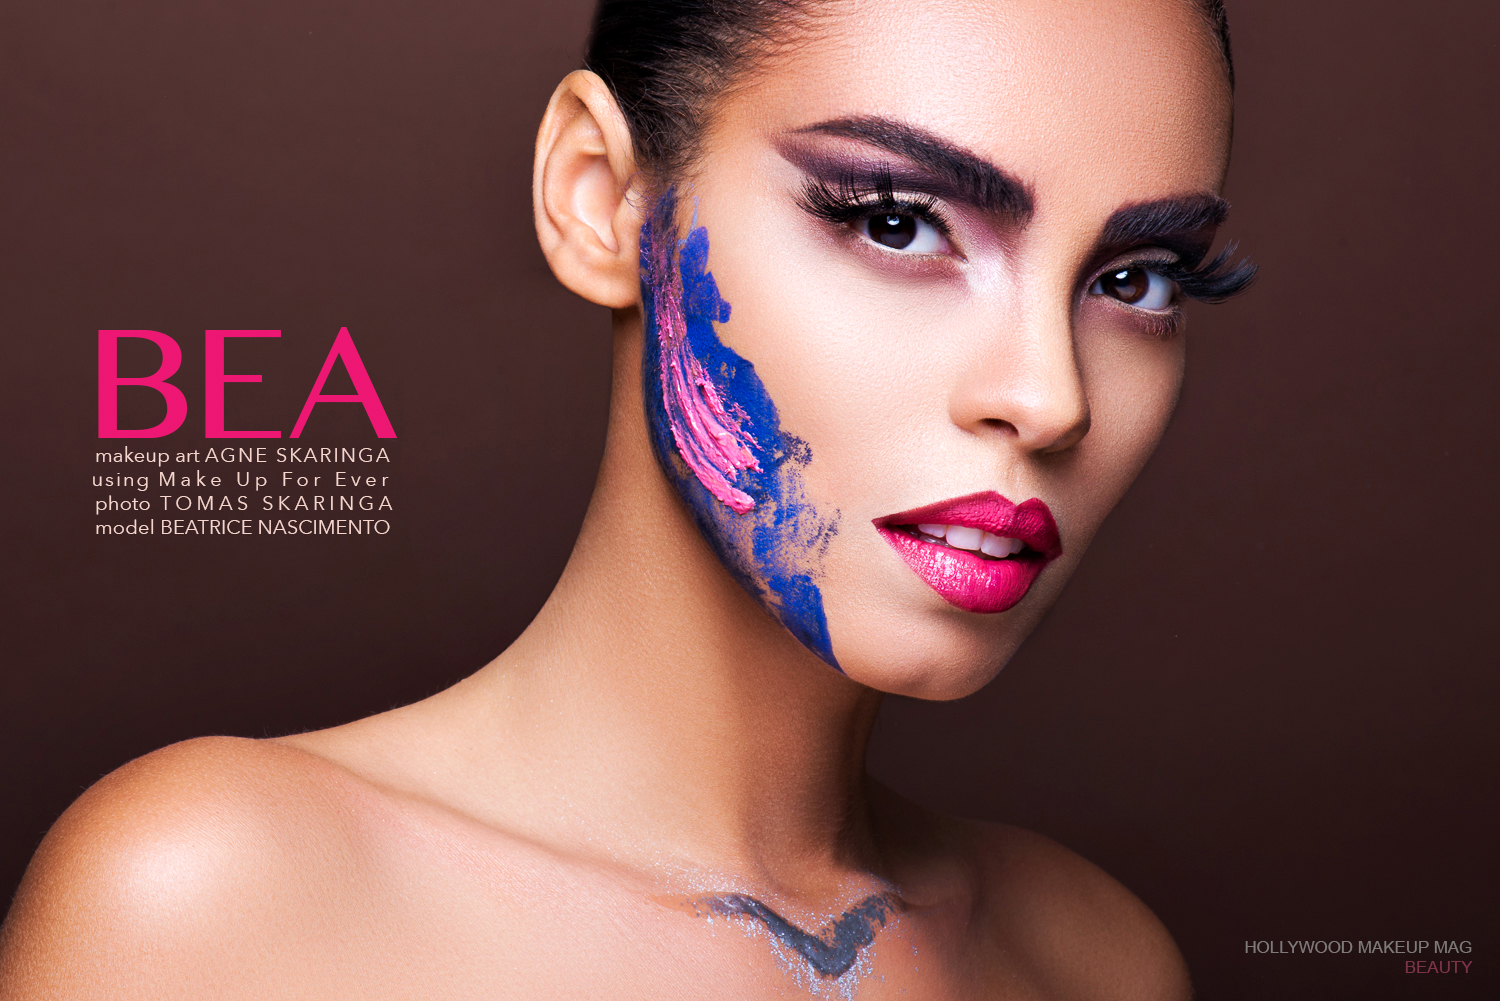 Hollywood makeup mag beauty makeup editorial colors Makeup For Ever Mufe Agne Skaringa Tomas.jpg